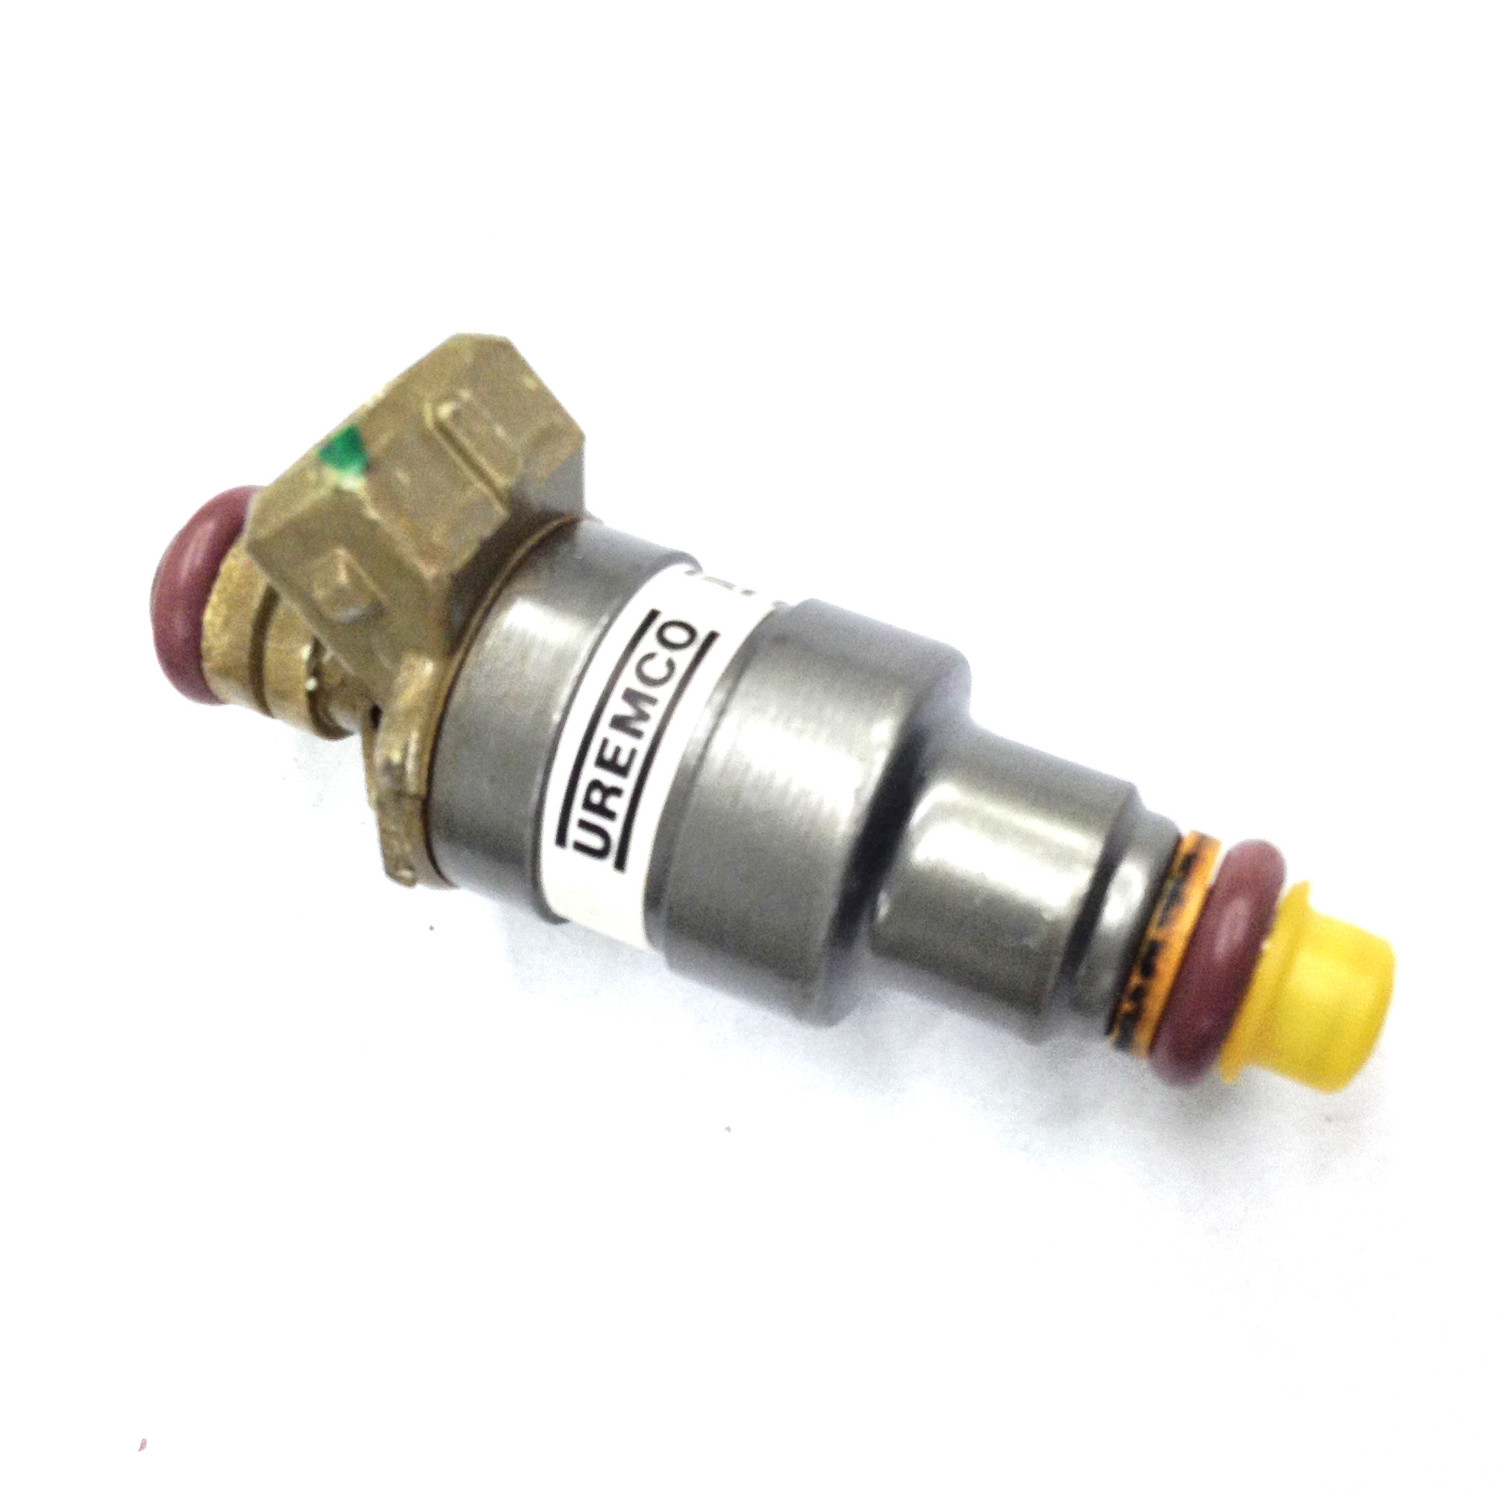 UNITED REMANUFACTURING CO - Fuel Injector - URC 1604